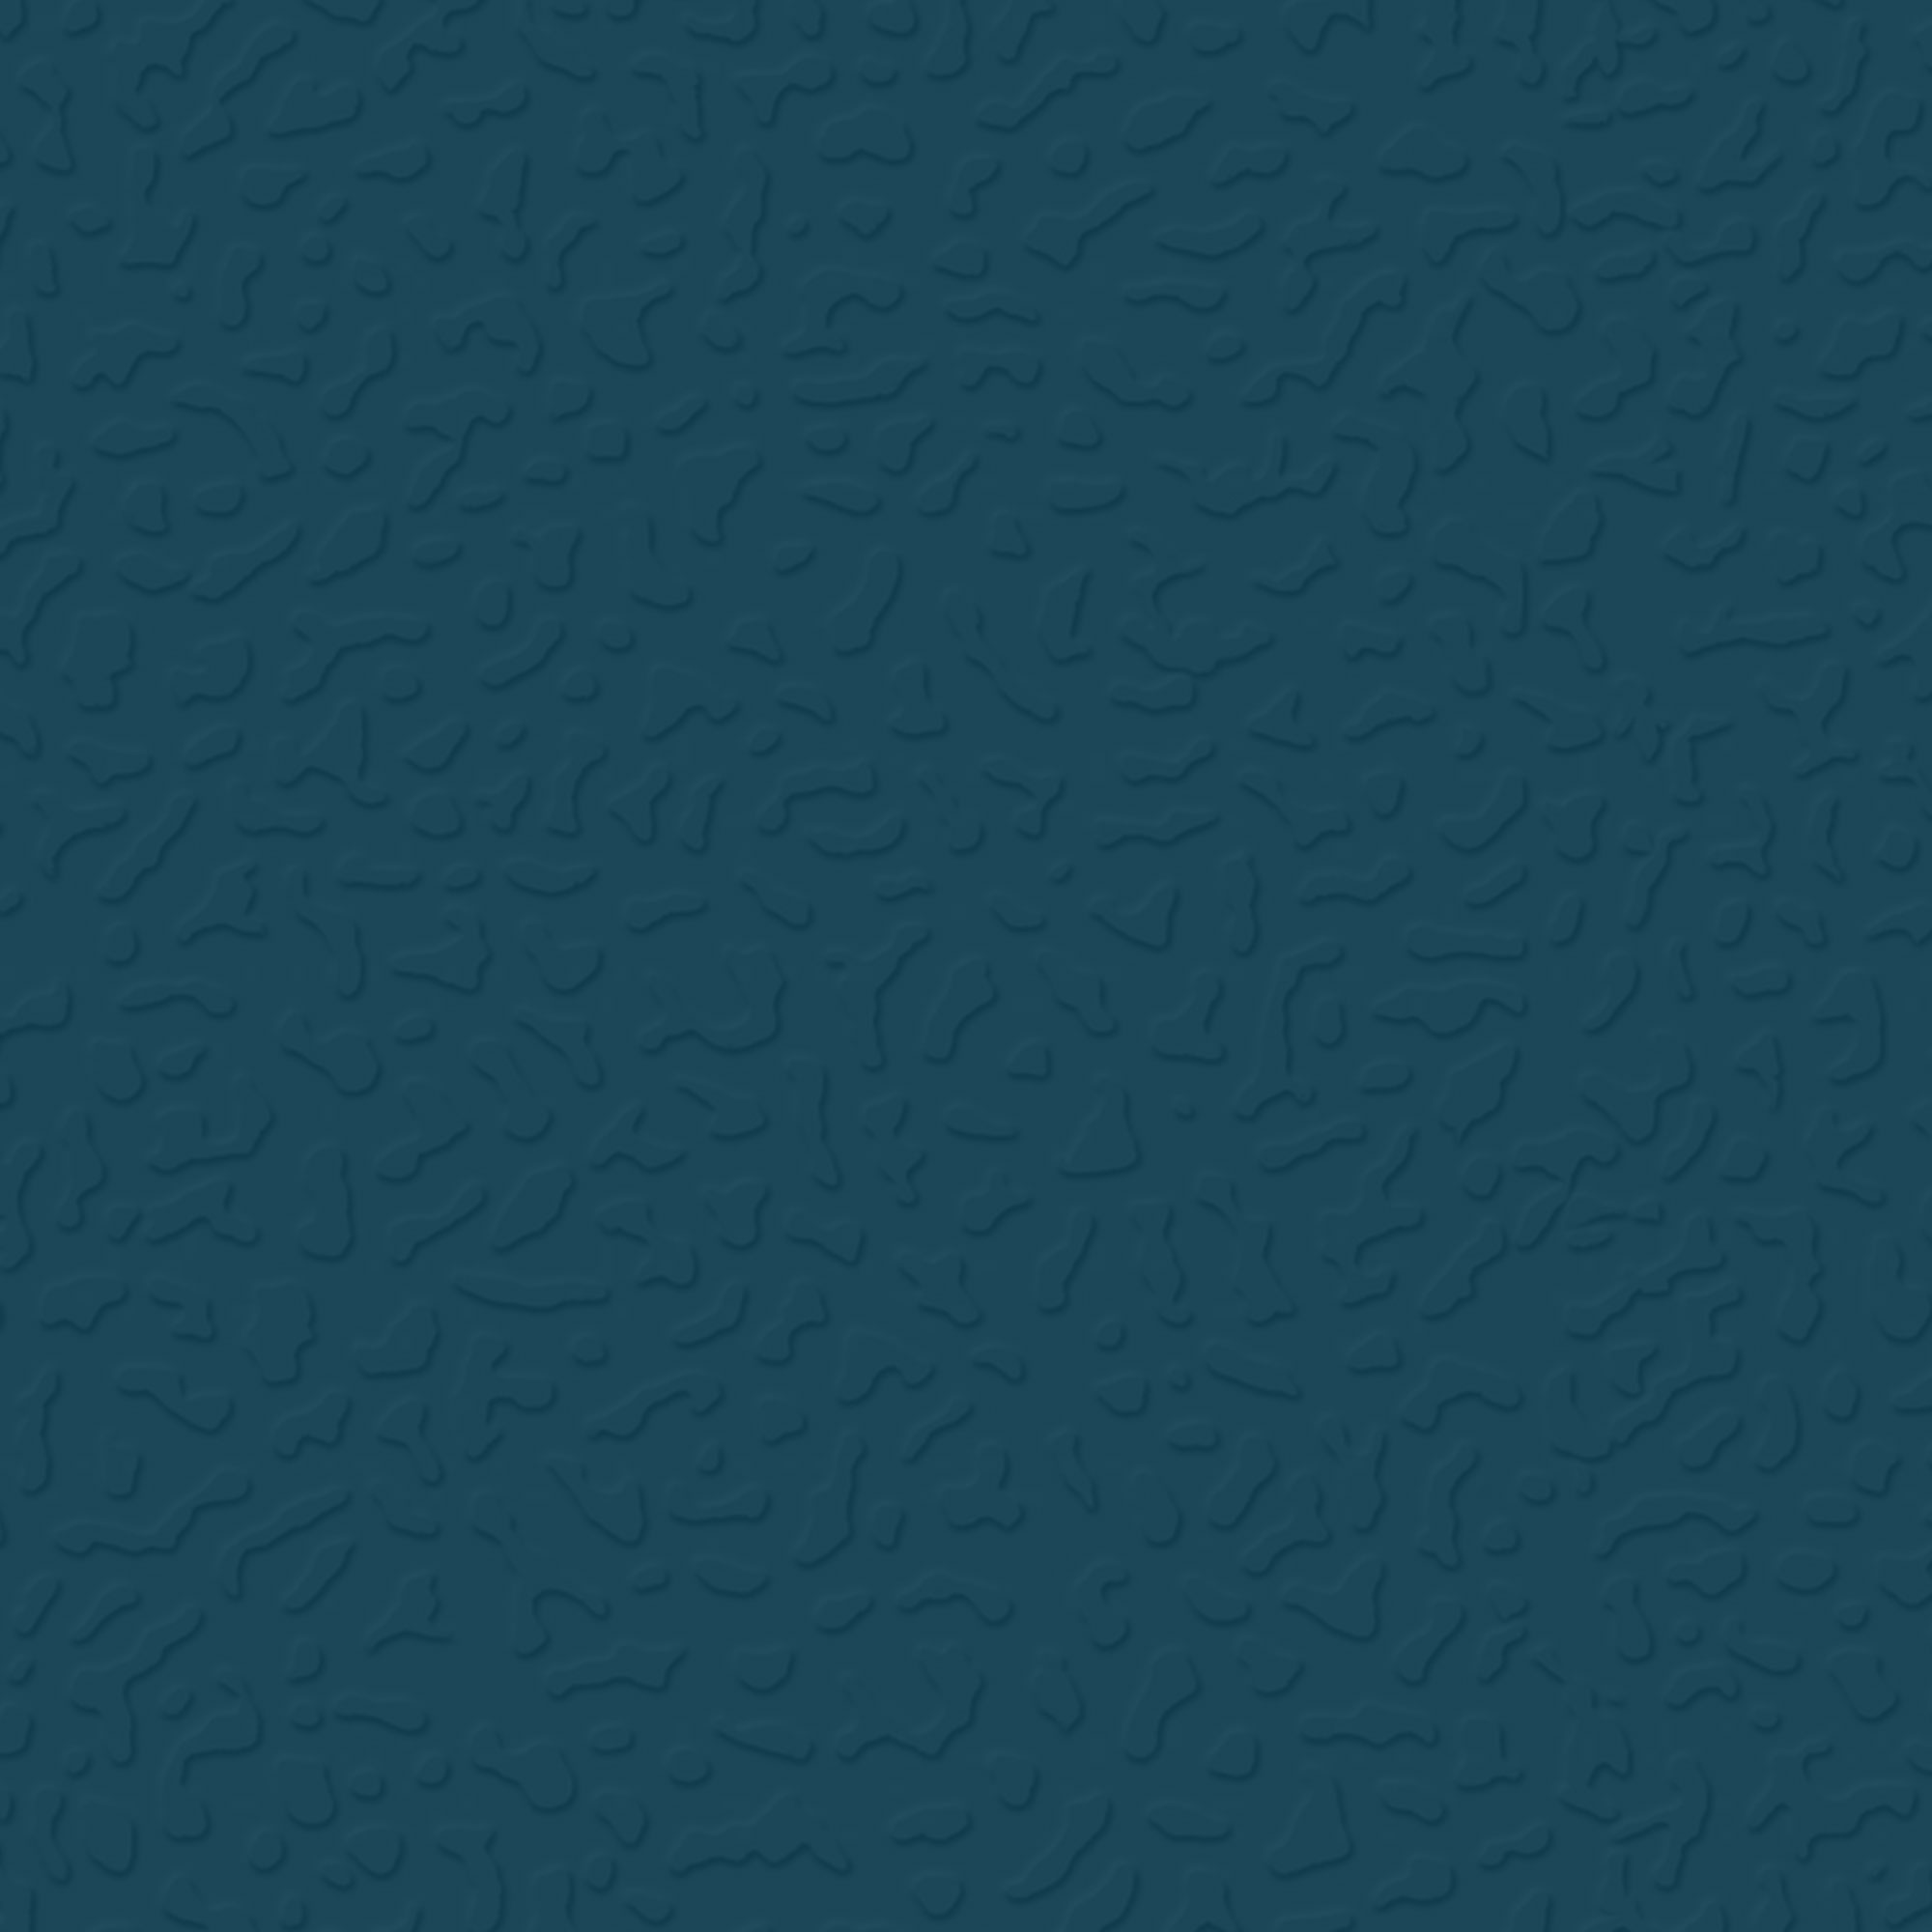 Roppe Rubber Tile 900 - Textured Design (993) Blue LB996187